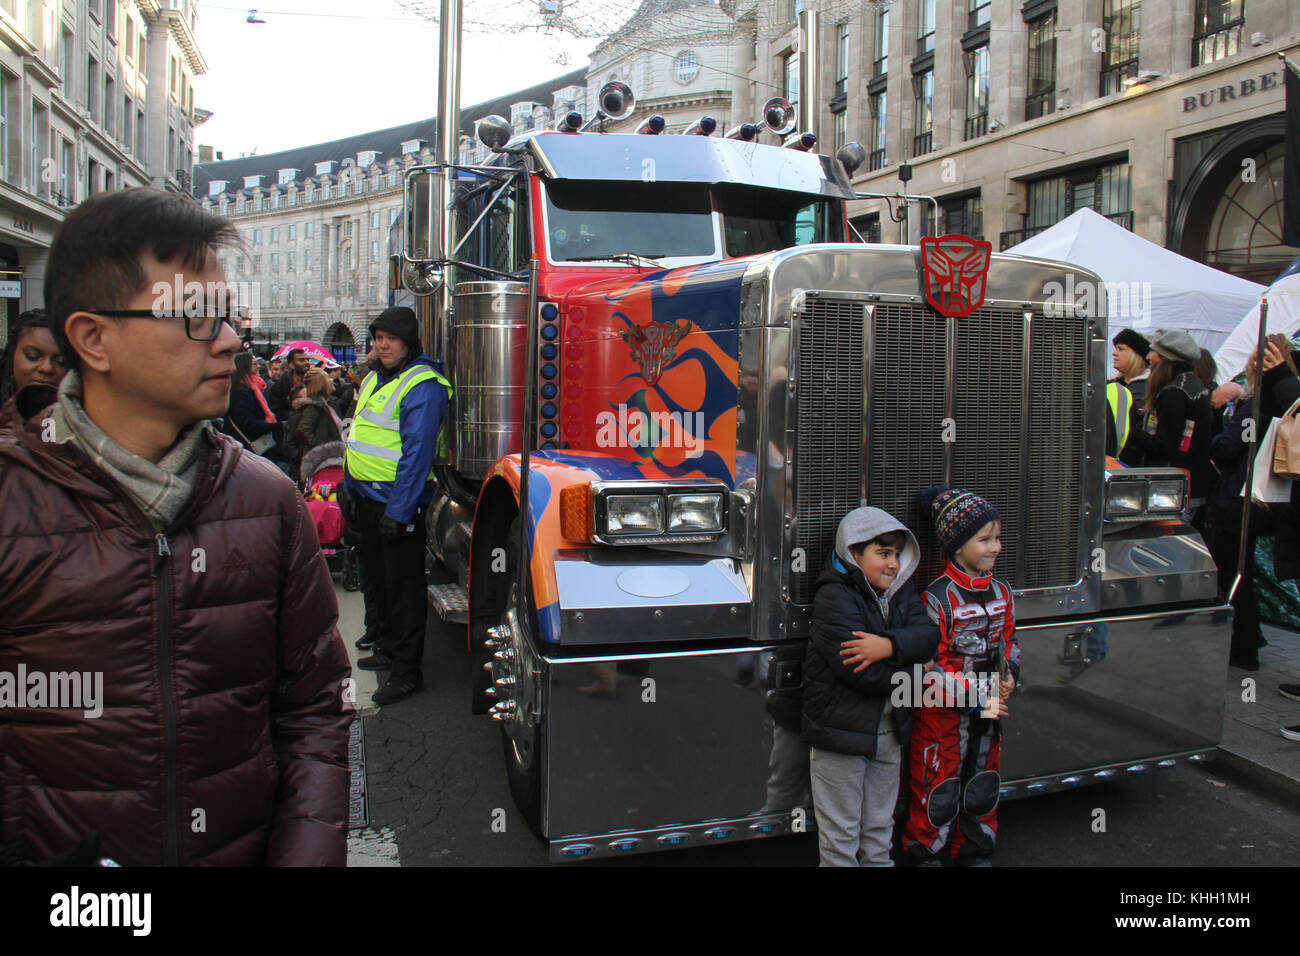 London, UK. 19th Nov 2017.  Two children pose by a Transformer truck at Hamleys Christmas Toy Parade on a traffic - Stock Image